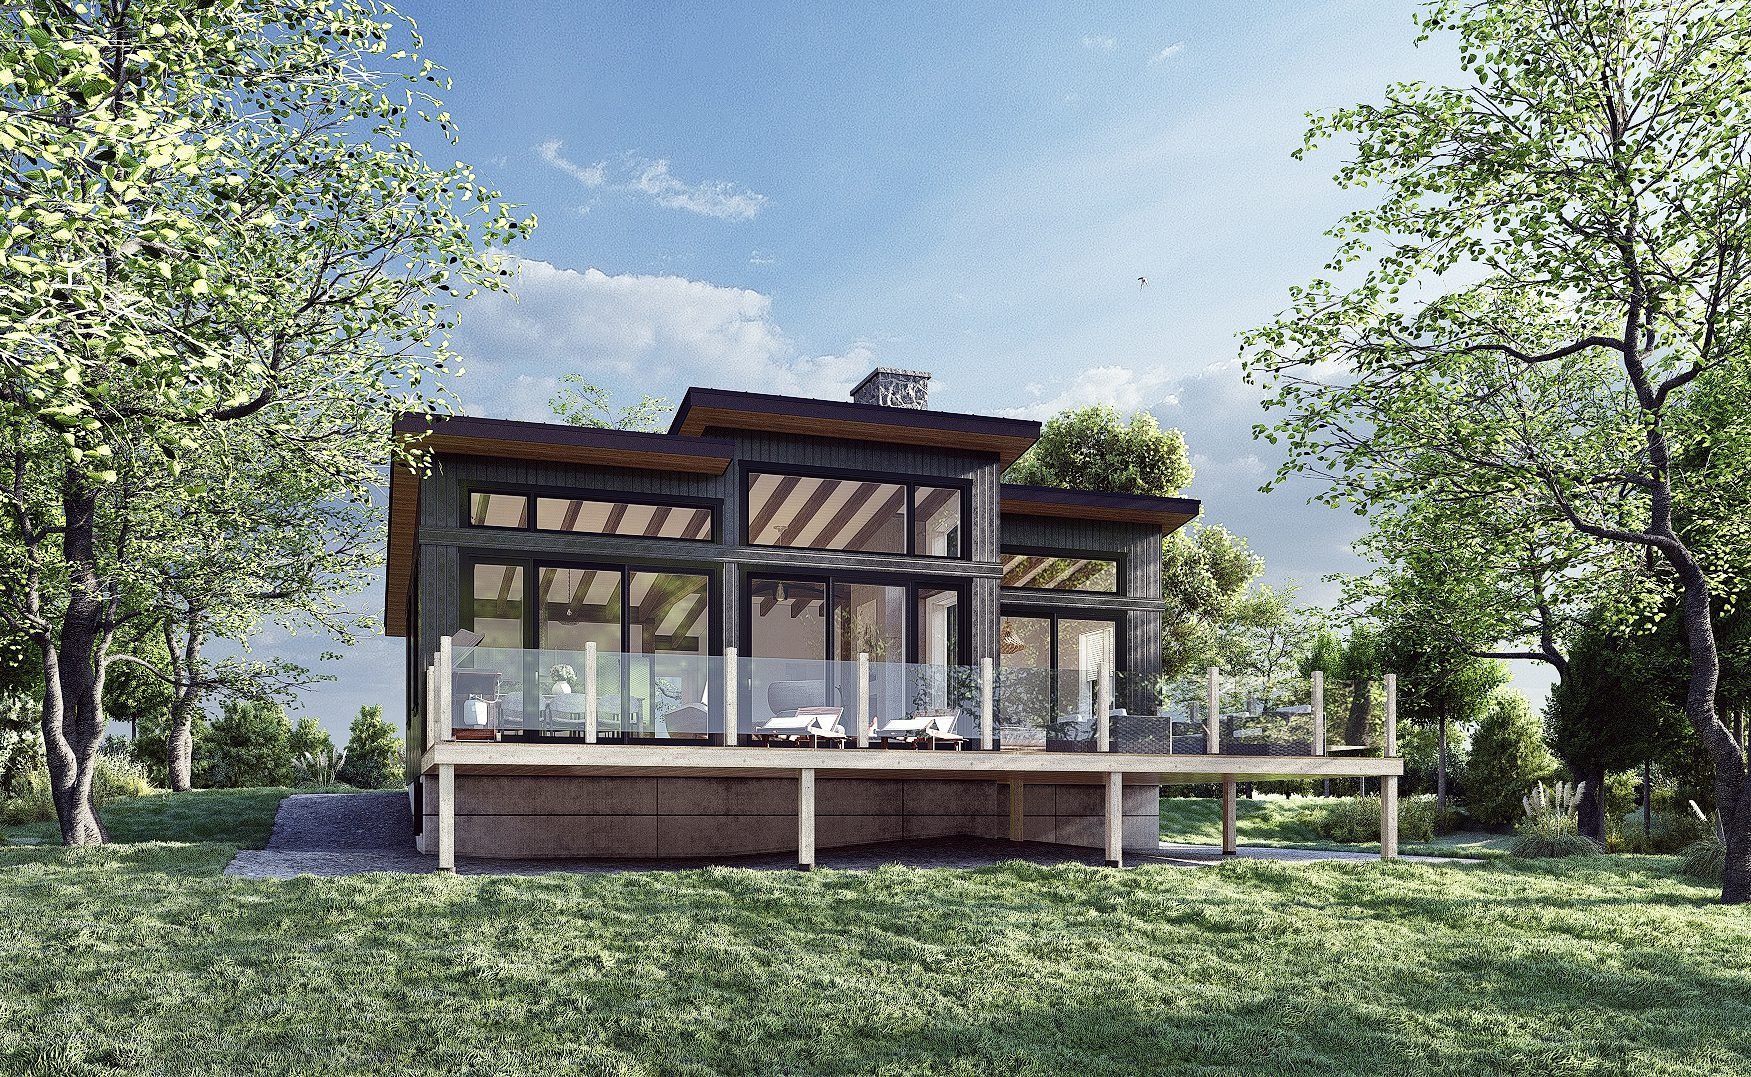 Normerica Timber Frames, House Plan, The Laurentian, Exterior, Rear